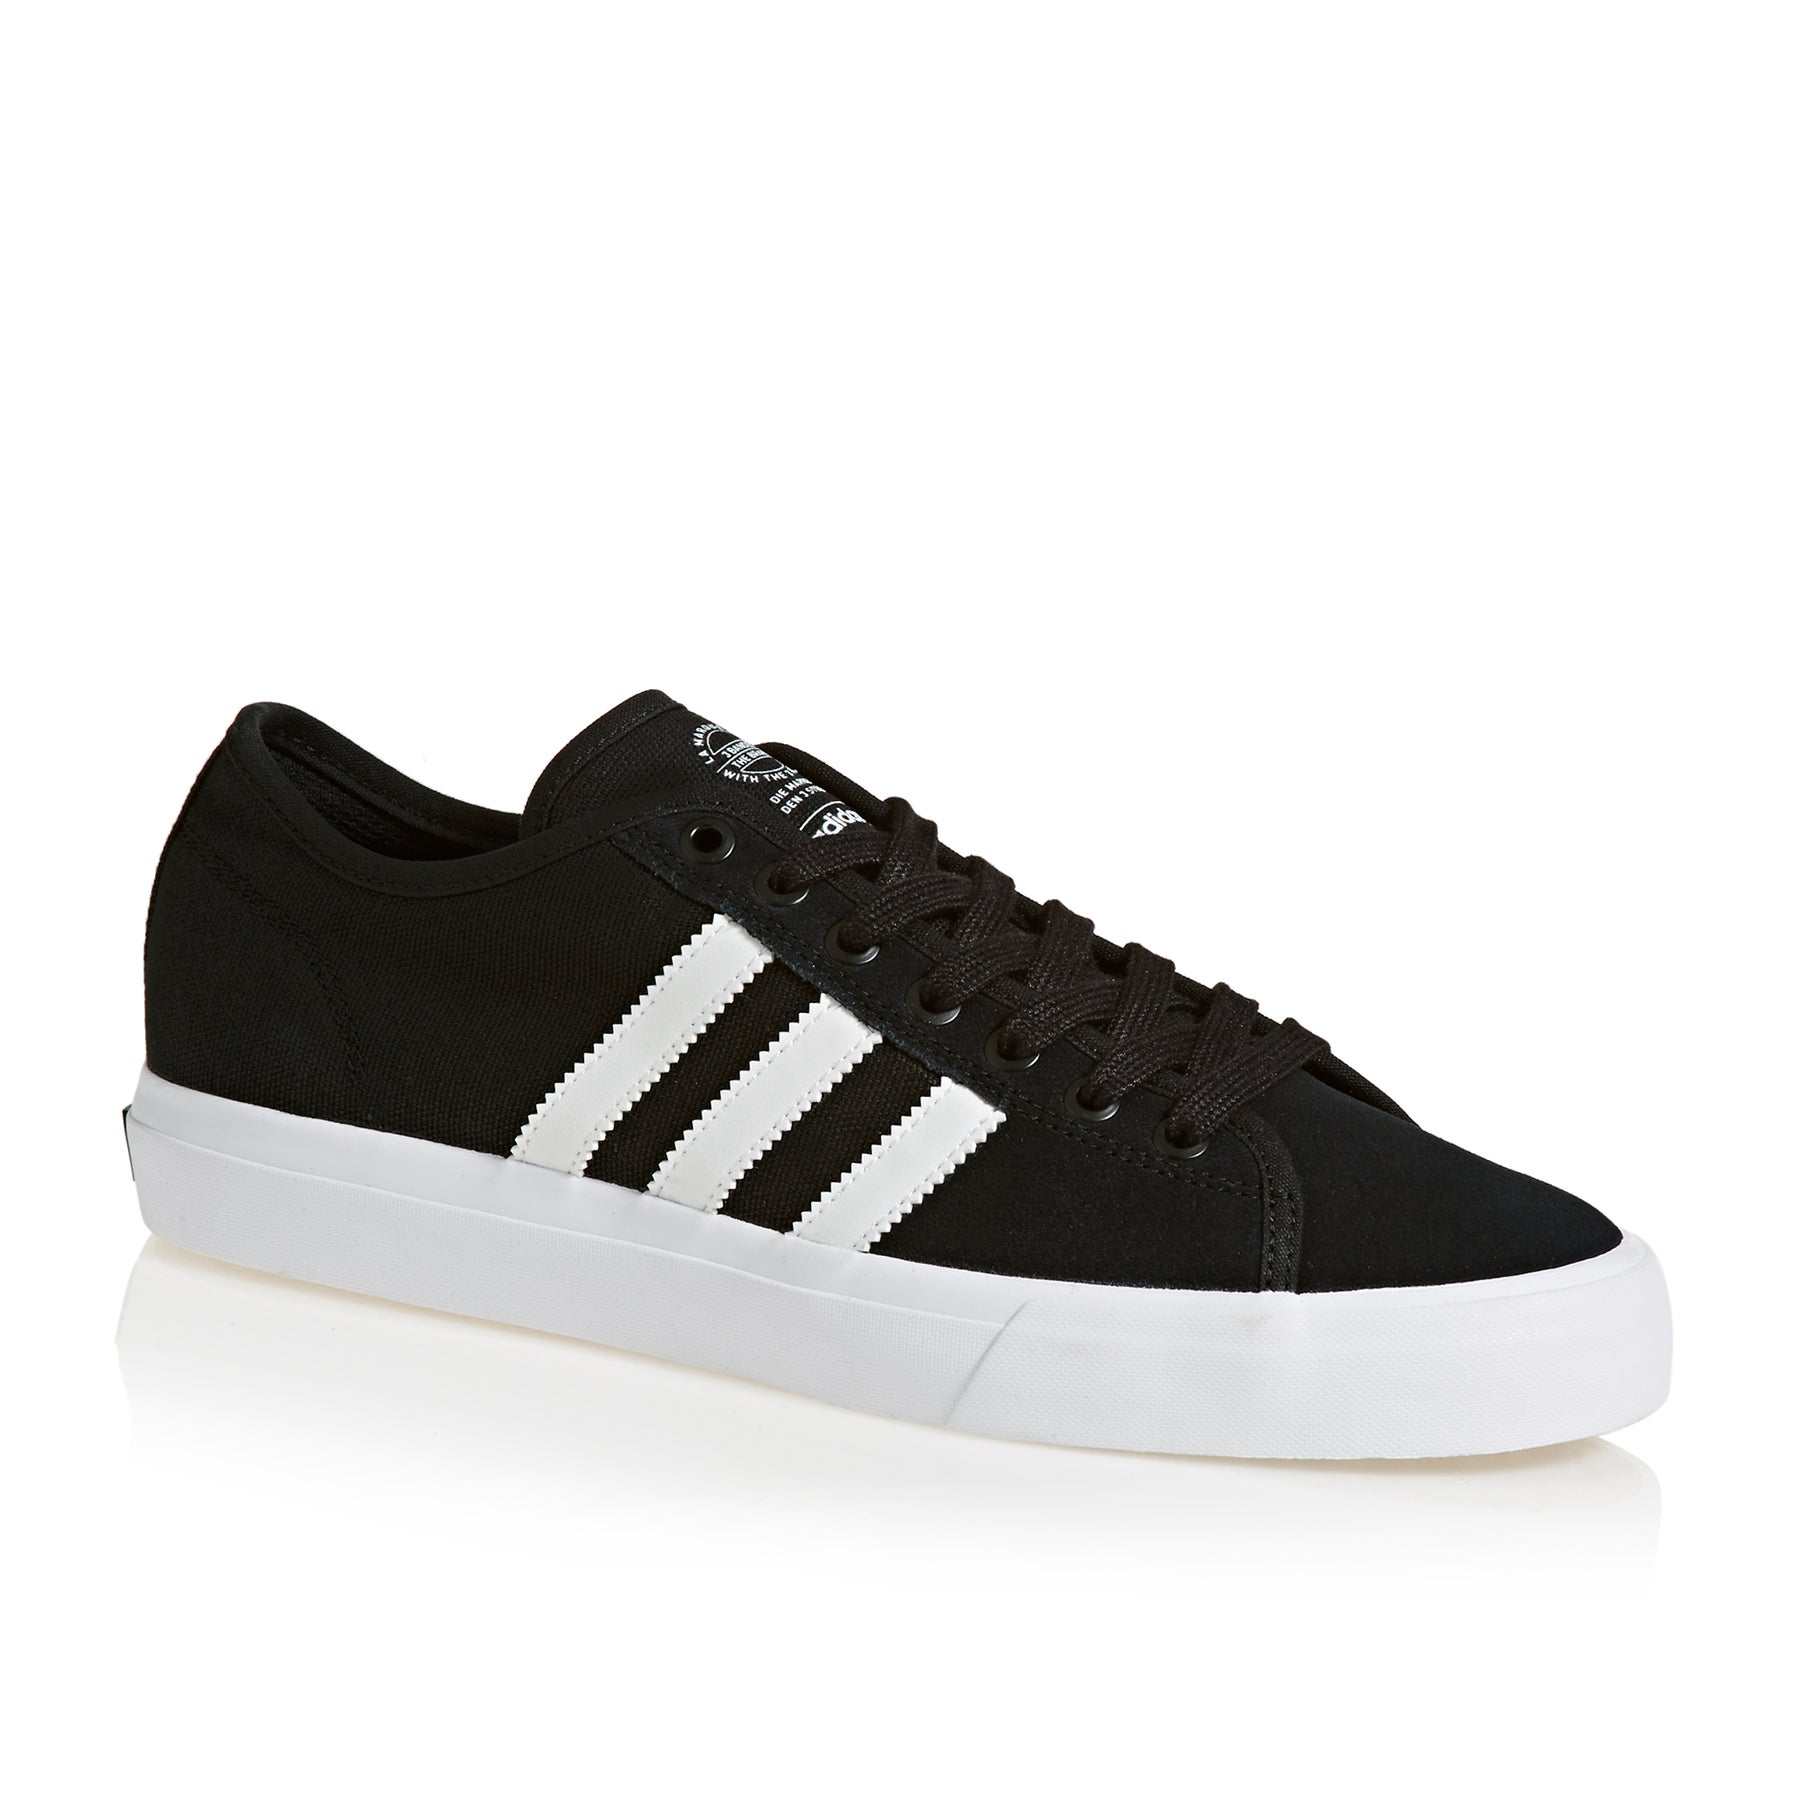 Adidas Matchcourt RX Shoes - Black White